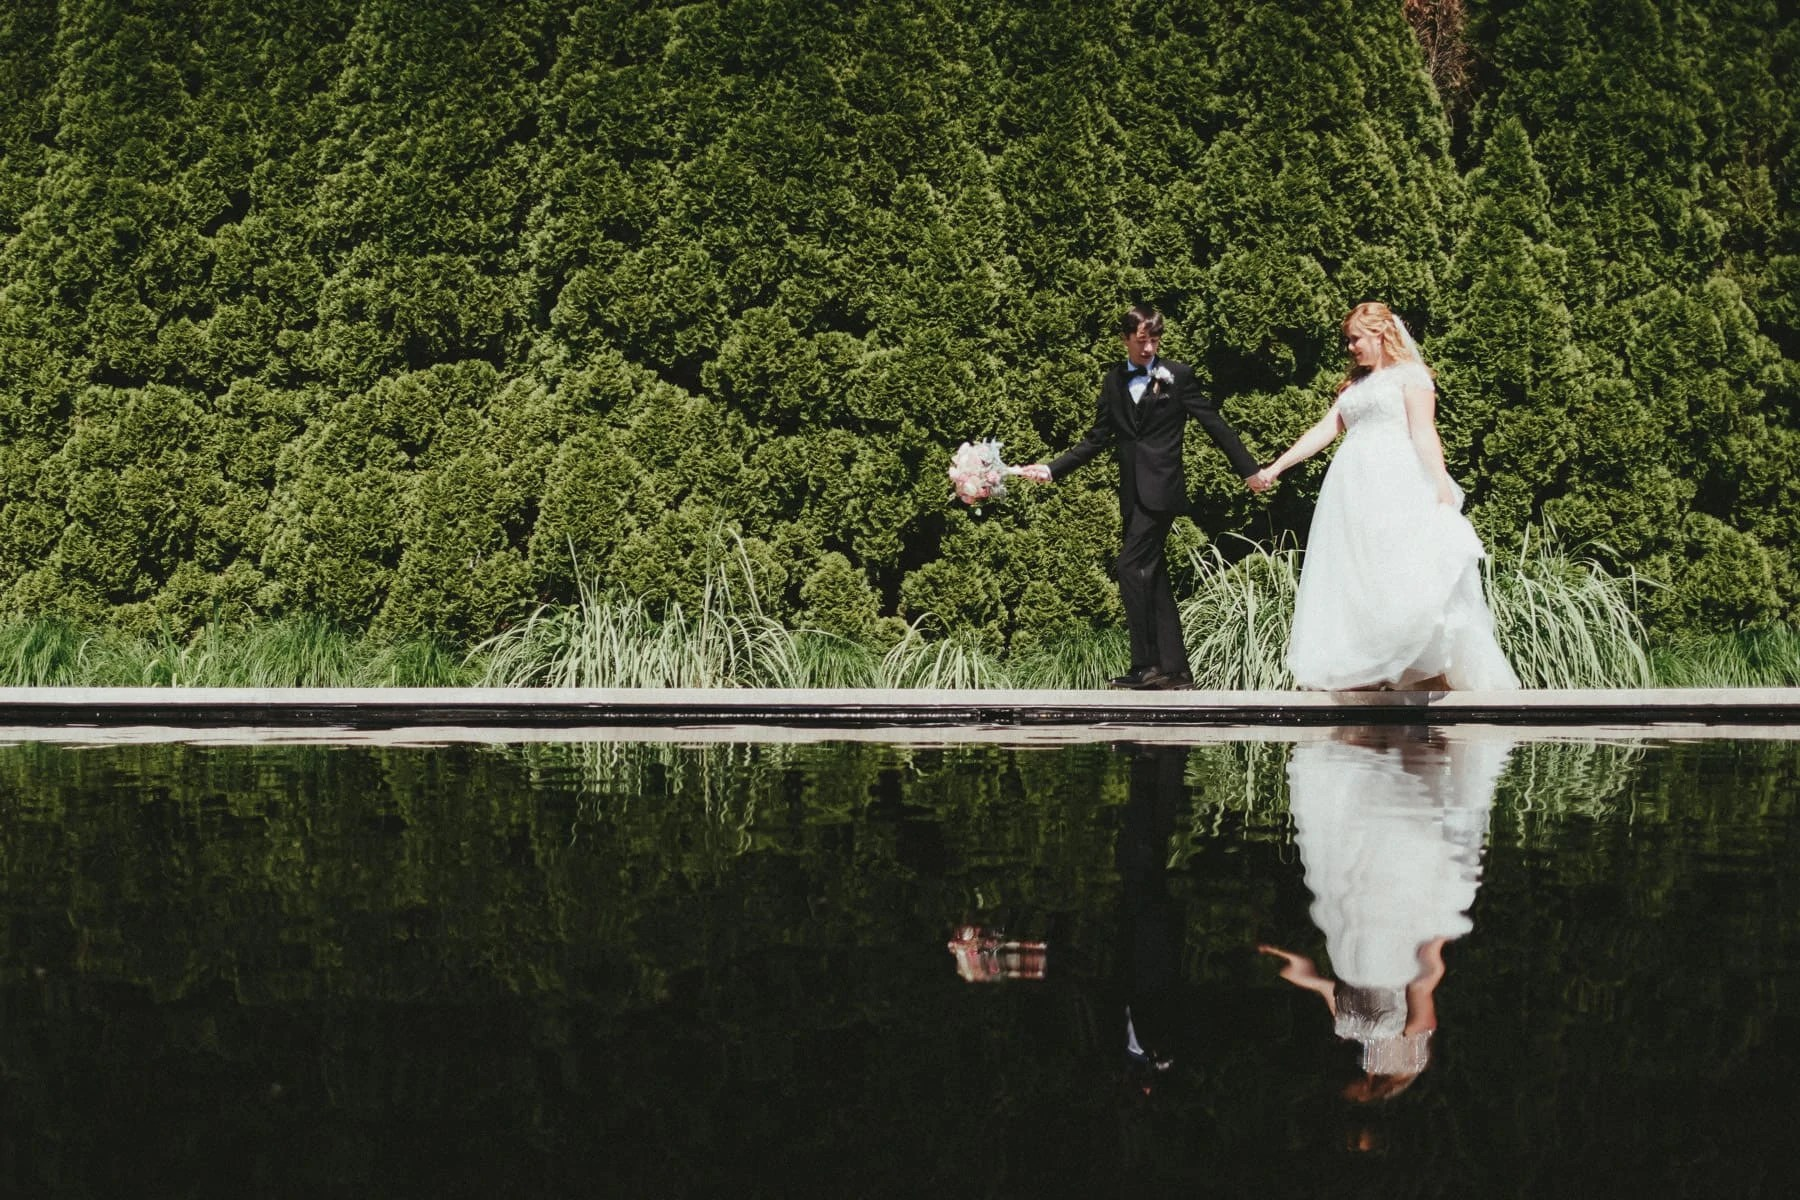 Bride and Groom reflection in the pond